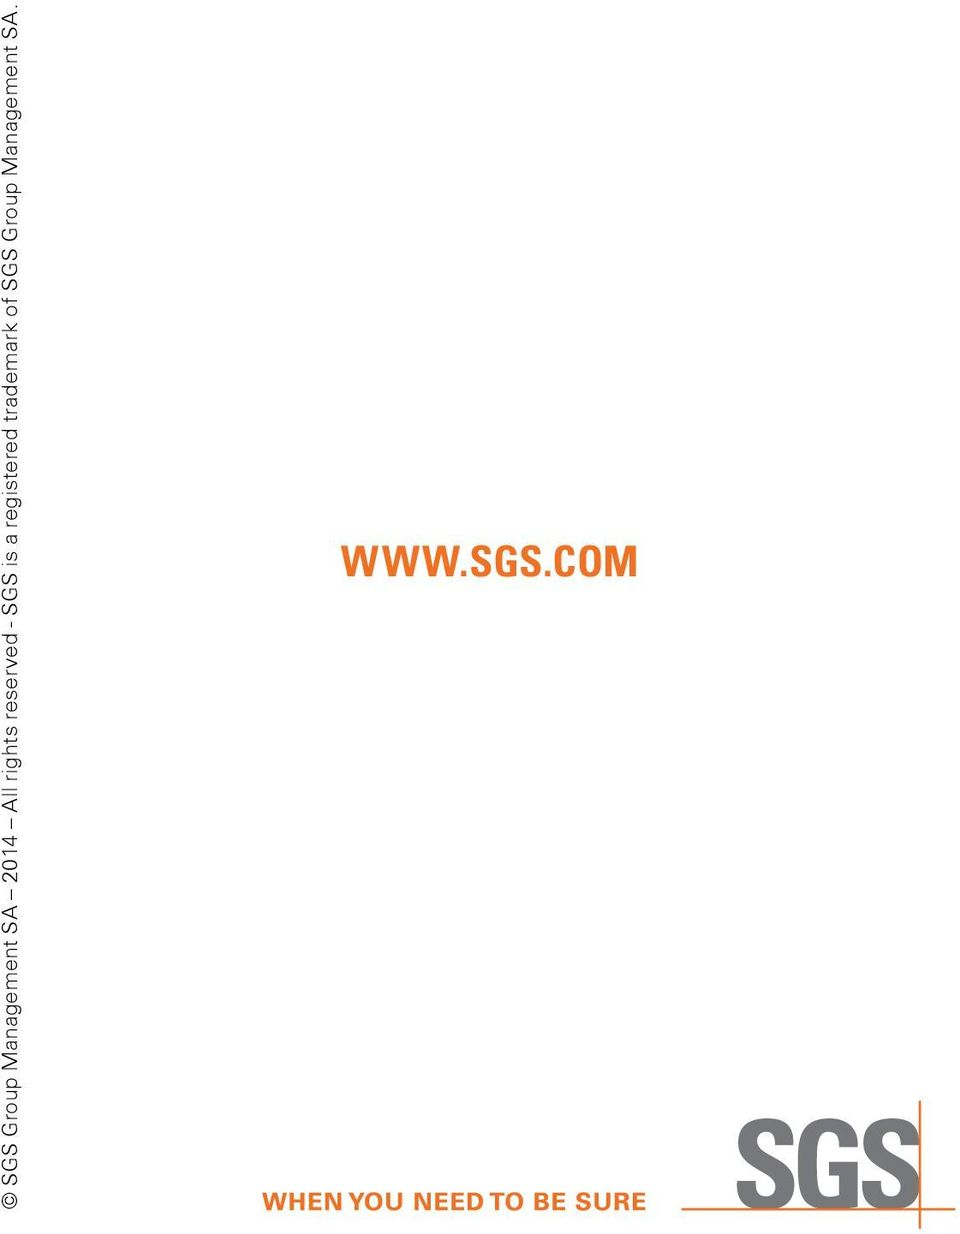 a registered trademark of SGS